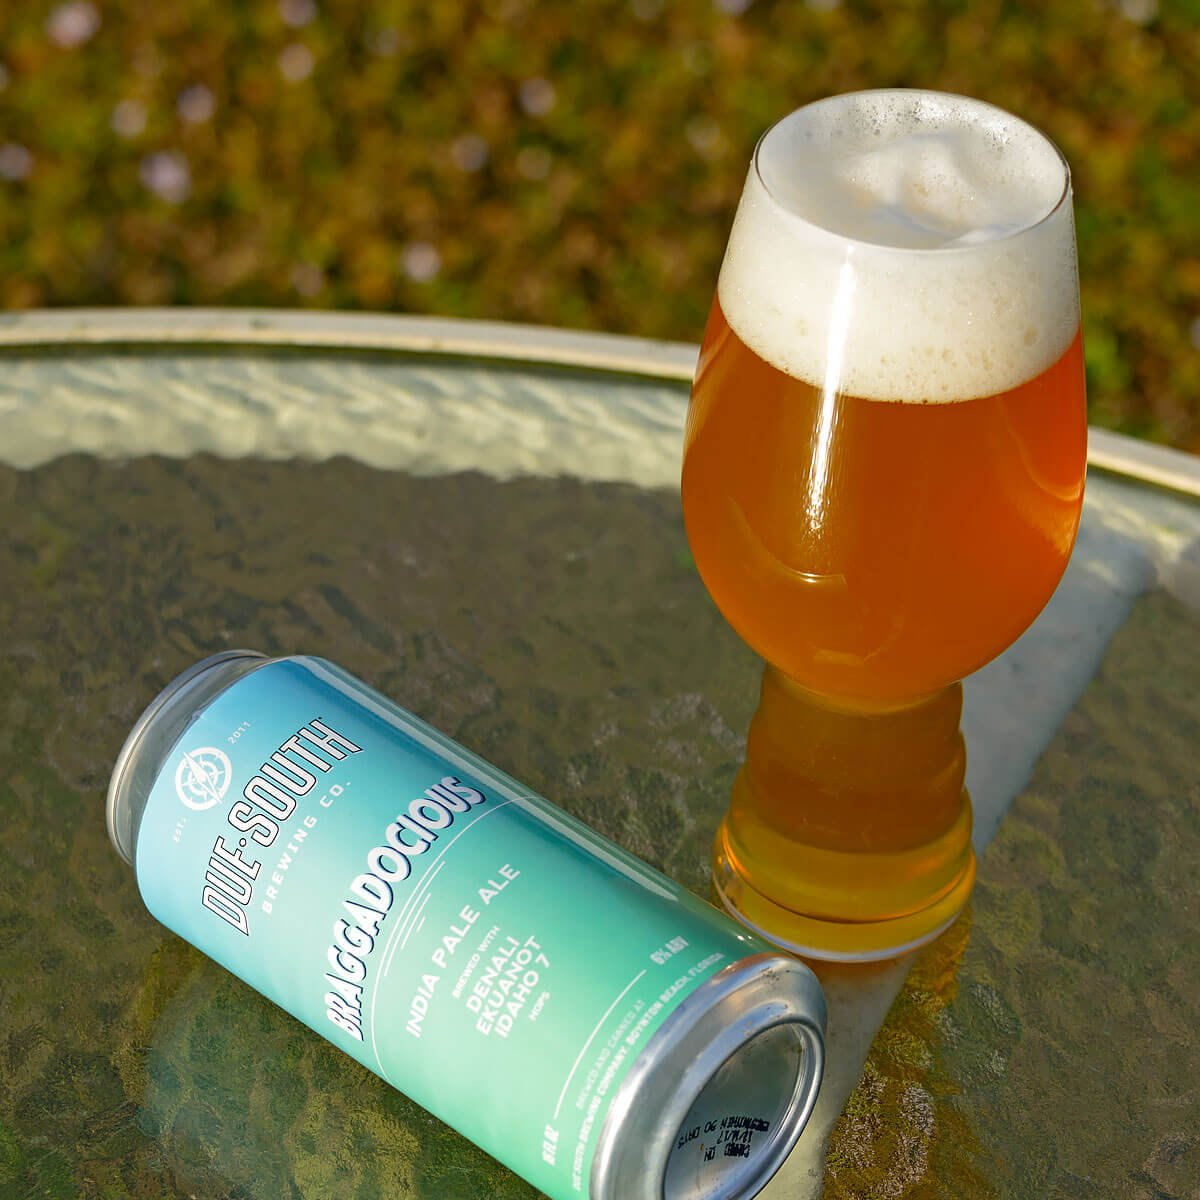 Braggadocious, an American IPA by Due South Brewing Co.